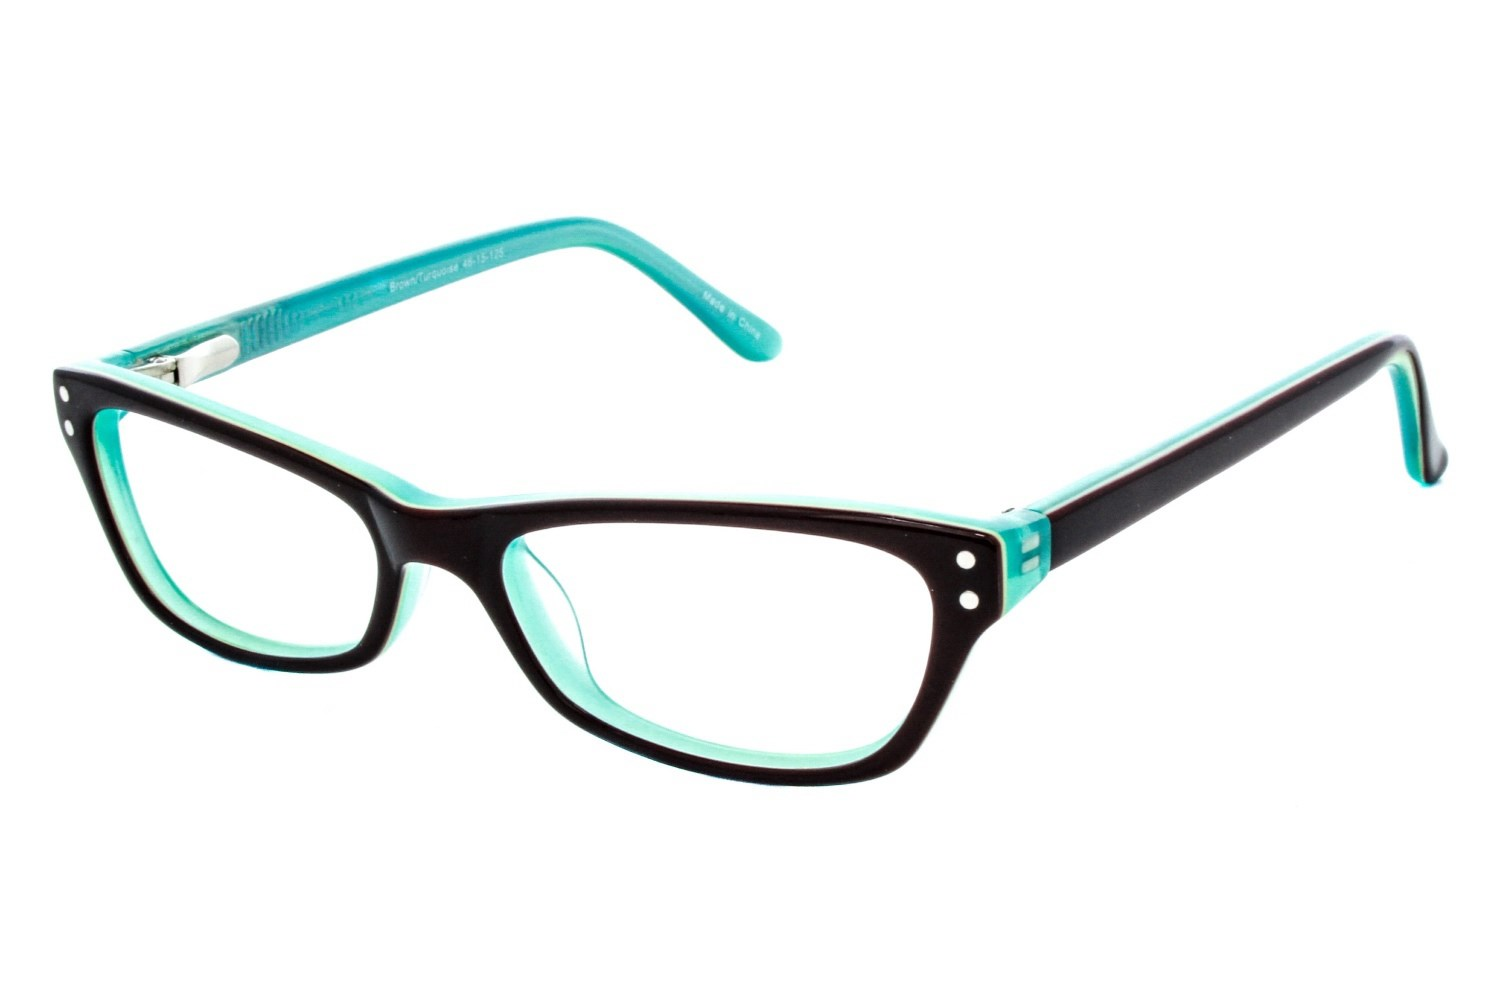 Lunettos Candy Eyeglasses Frames